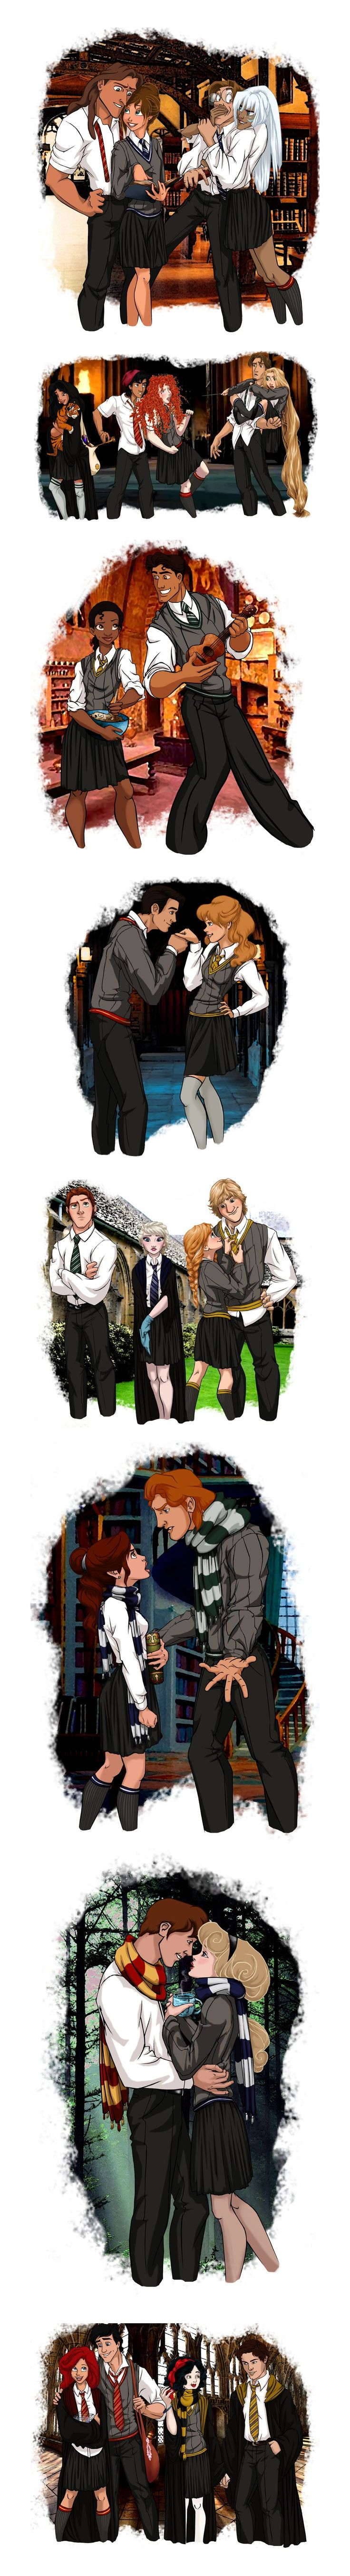 Disney Characters as Hogwarts Students.. How do people keep on coming up with stuff like this o-o